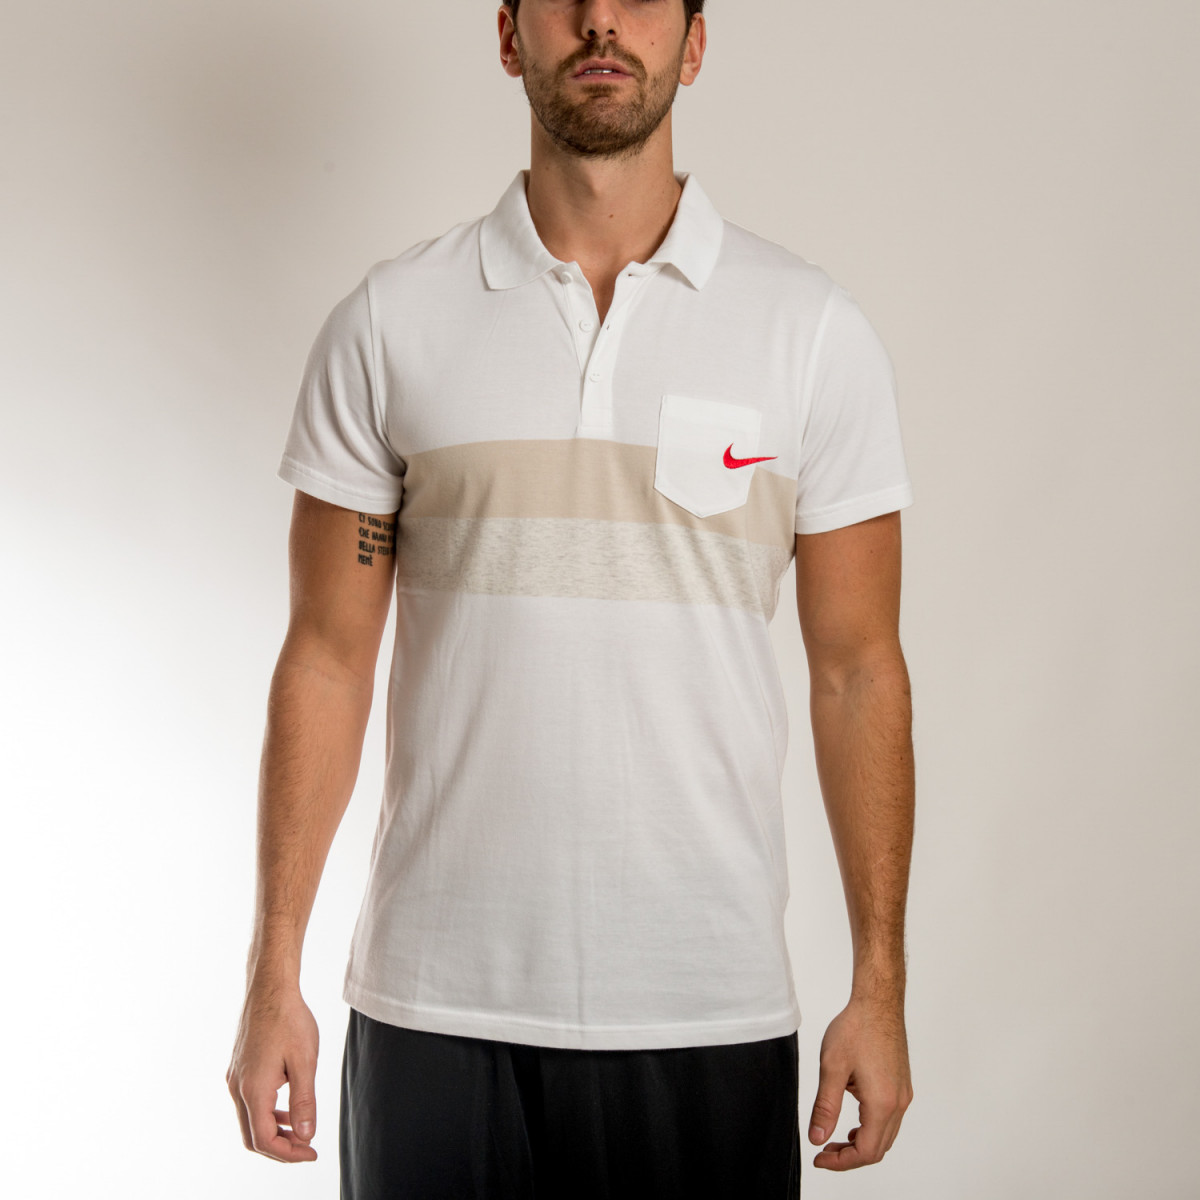 REMERA NIKE STRIPE JERSEY POLO